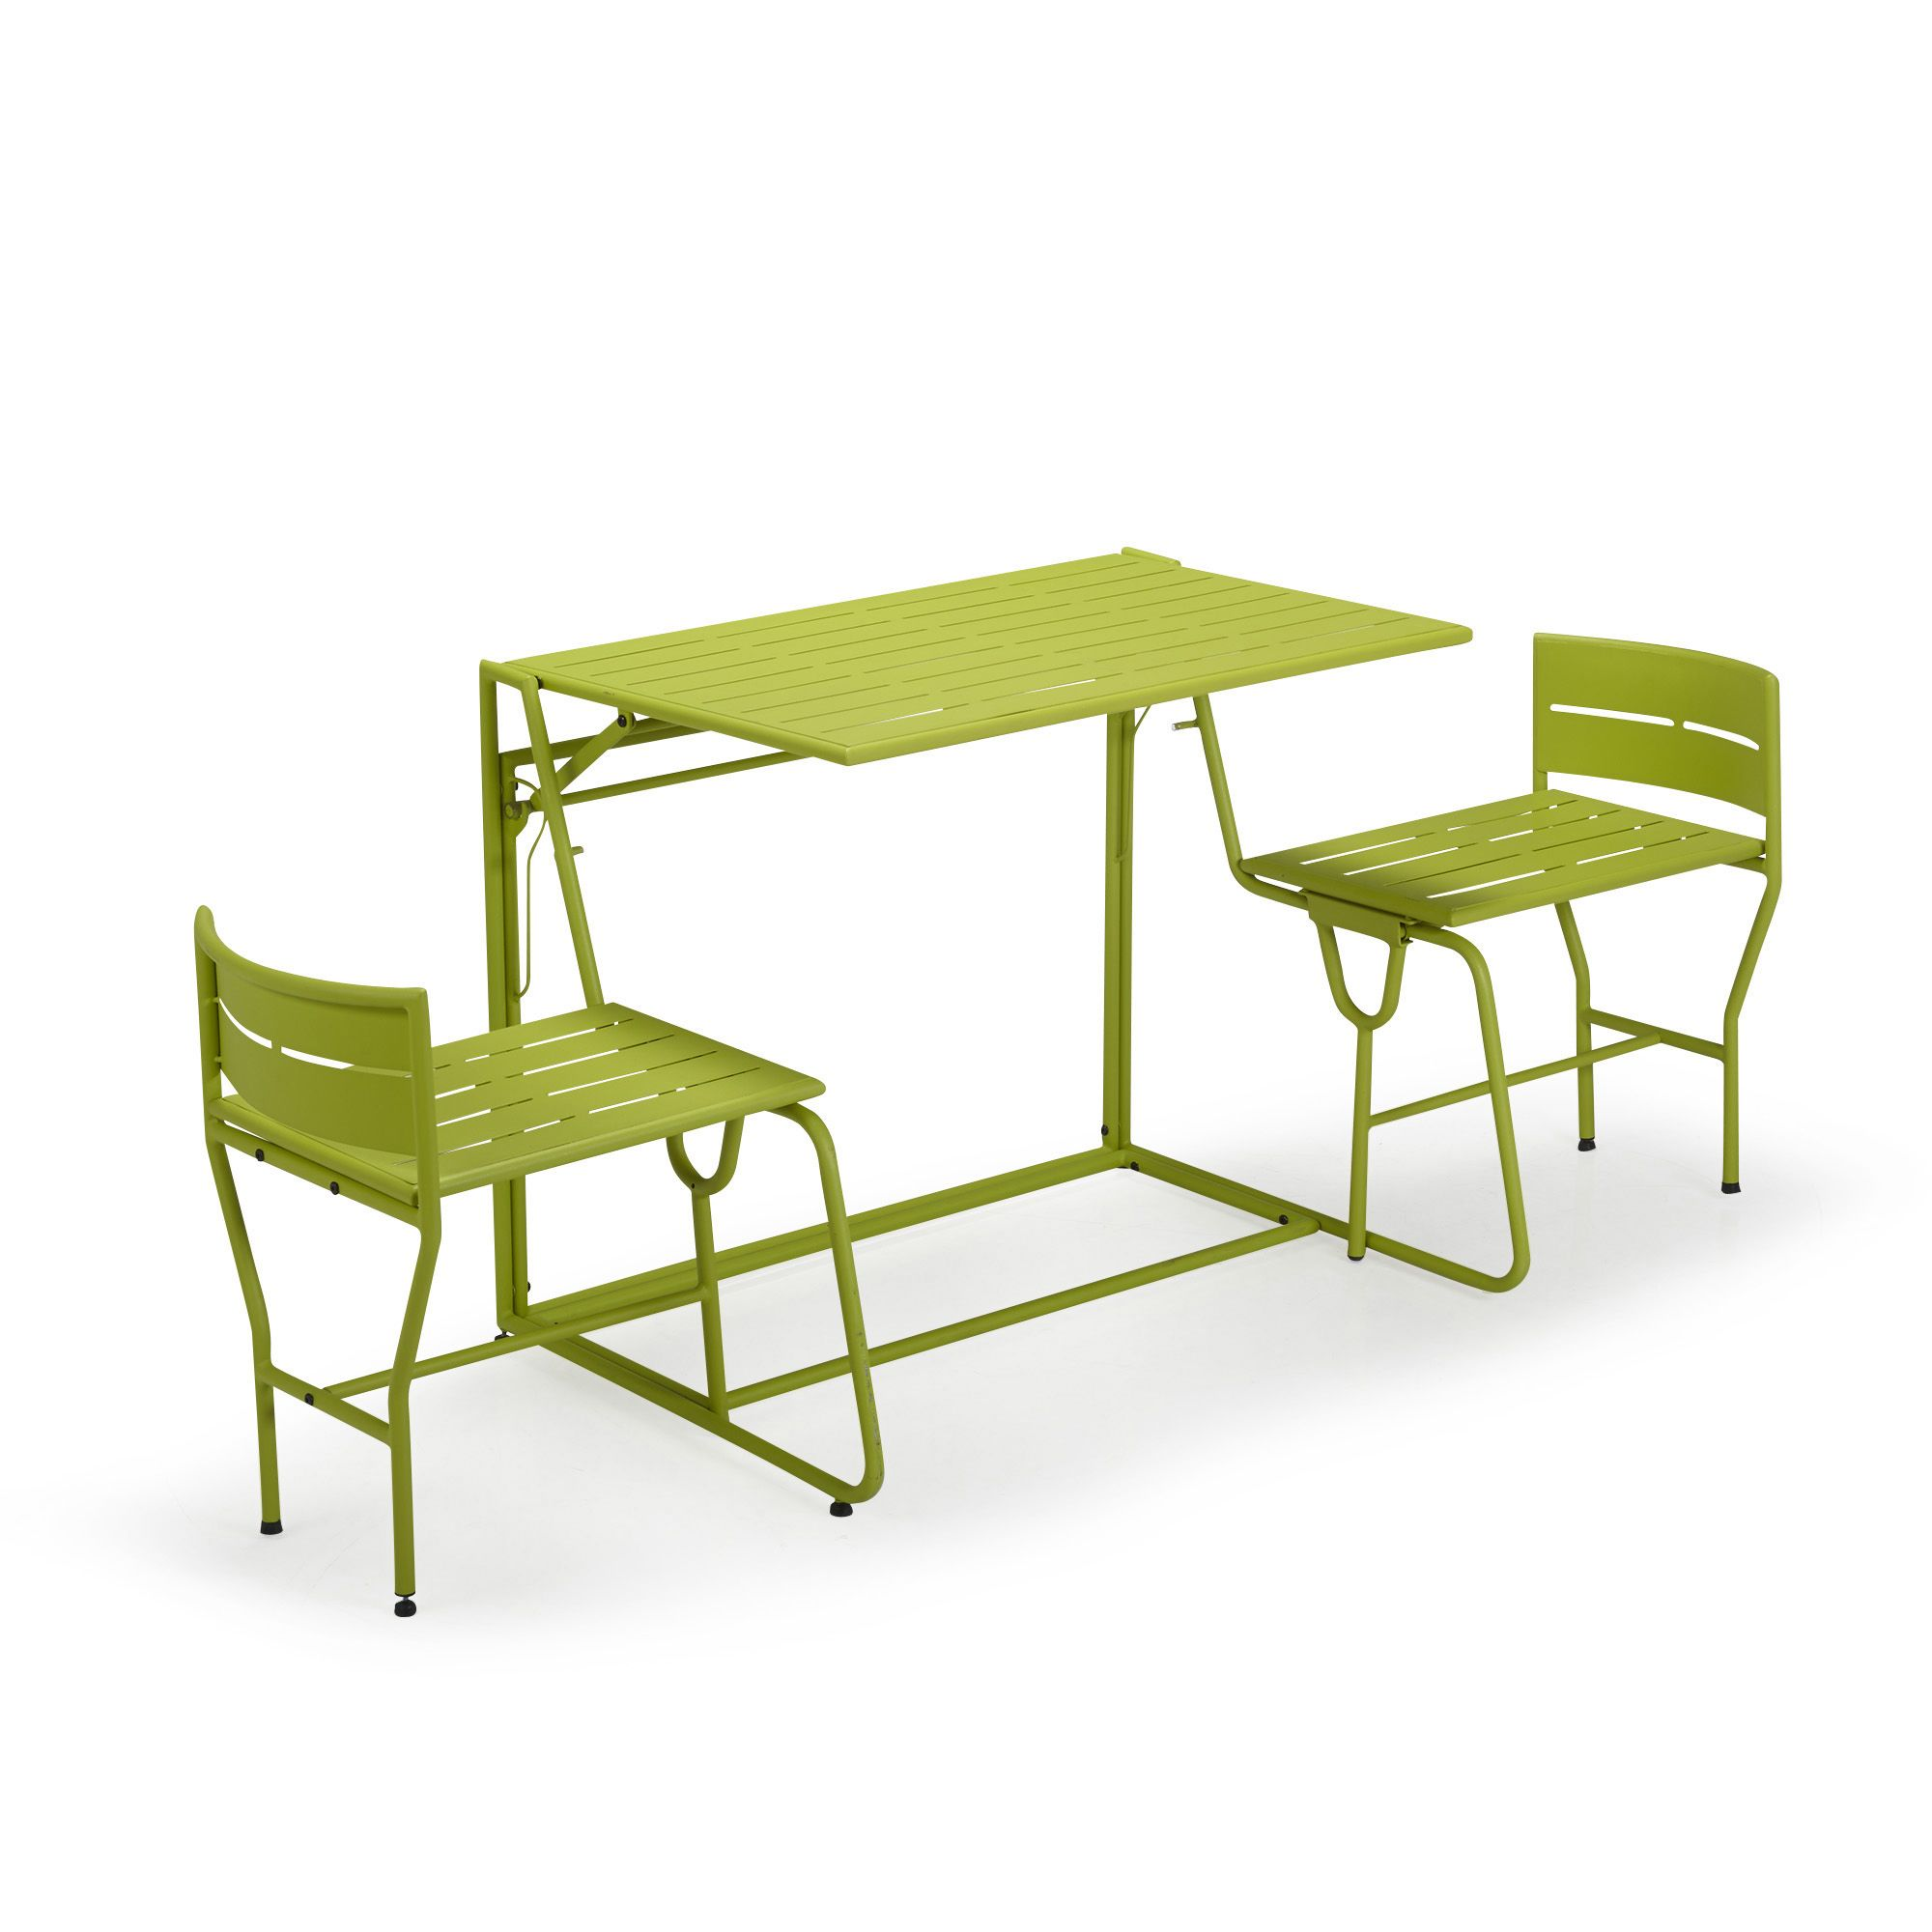 Picnic le salon de jardin balcon transformable 2 en 1 for Salon balcon